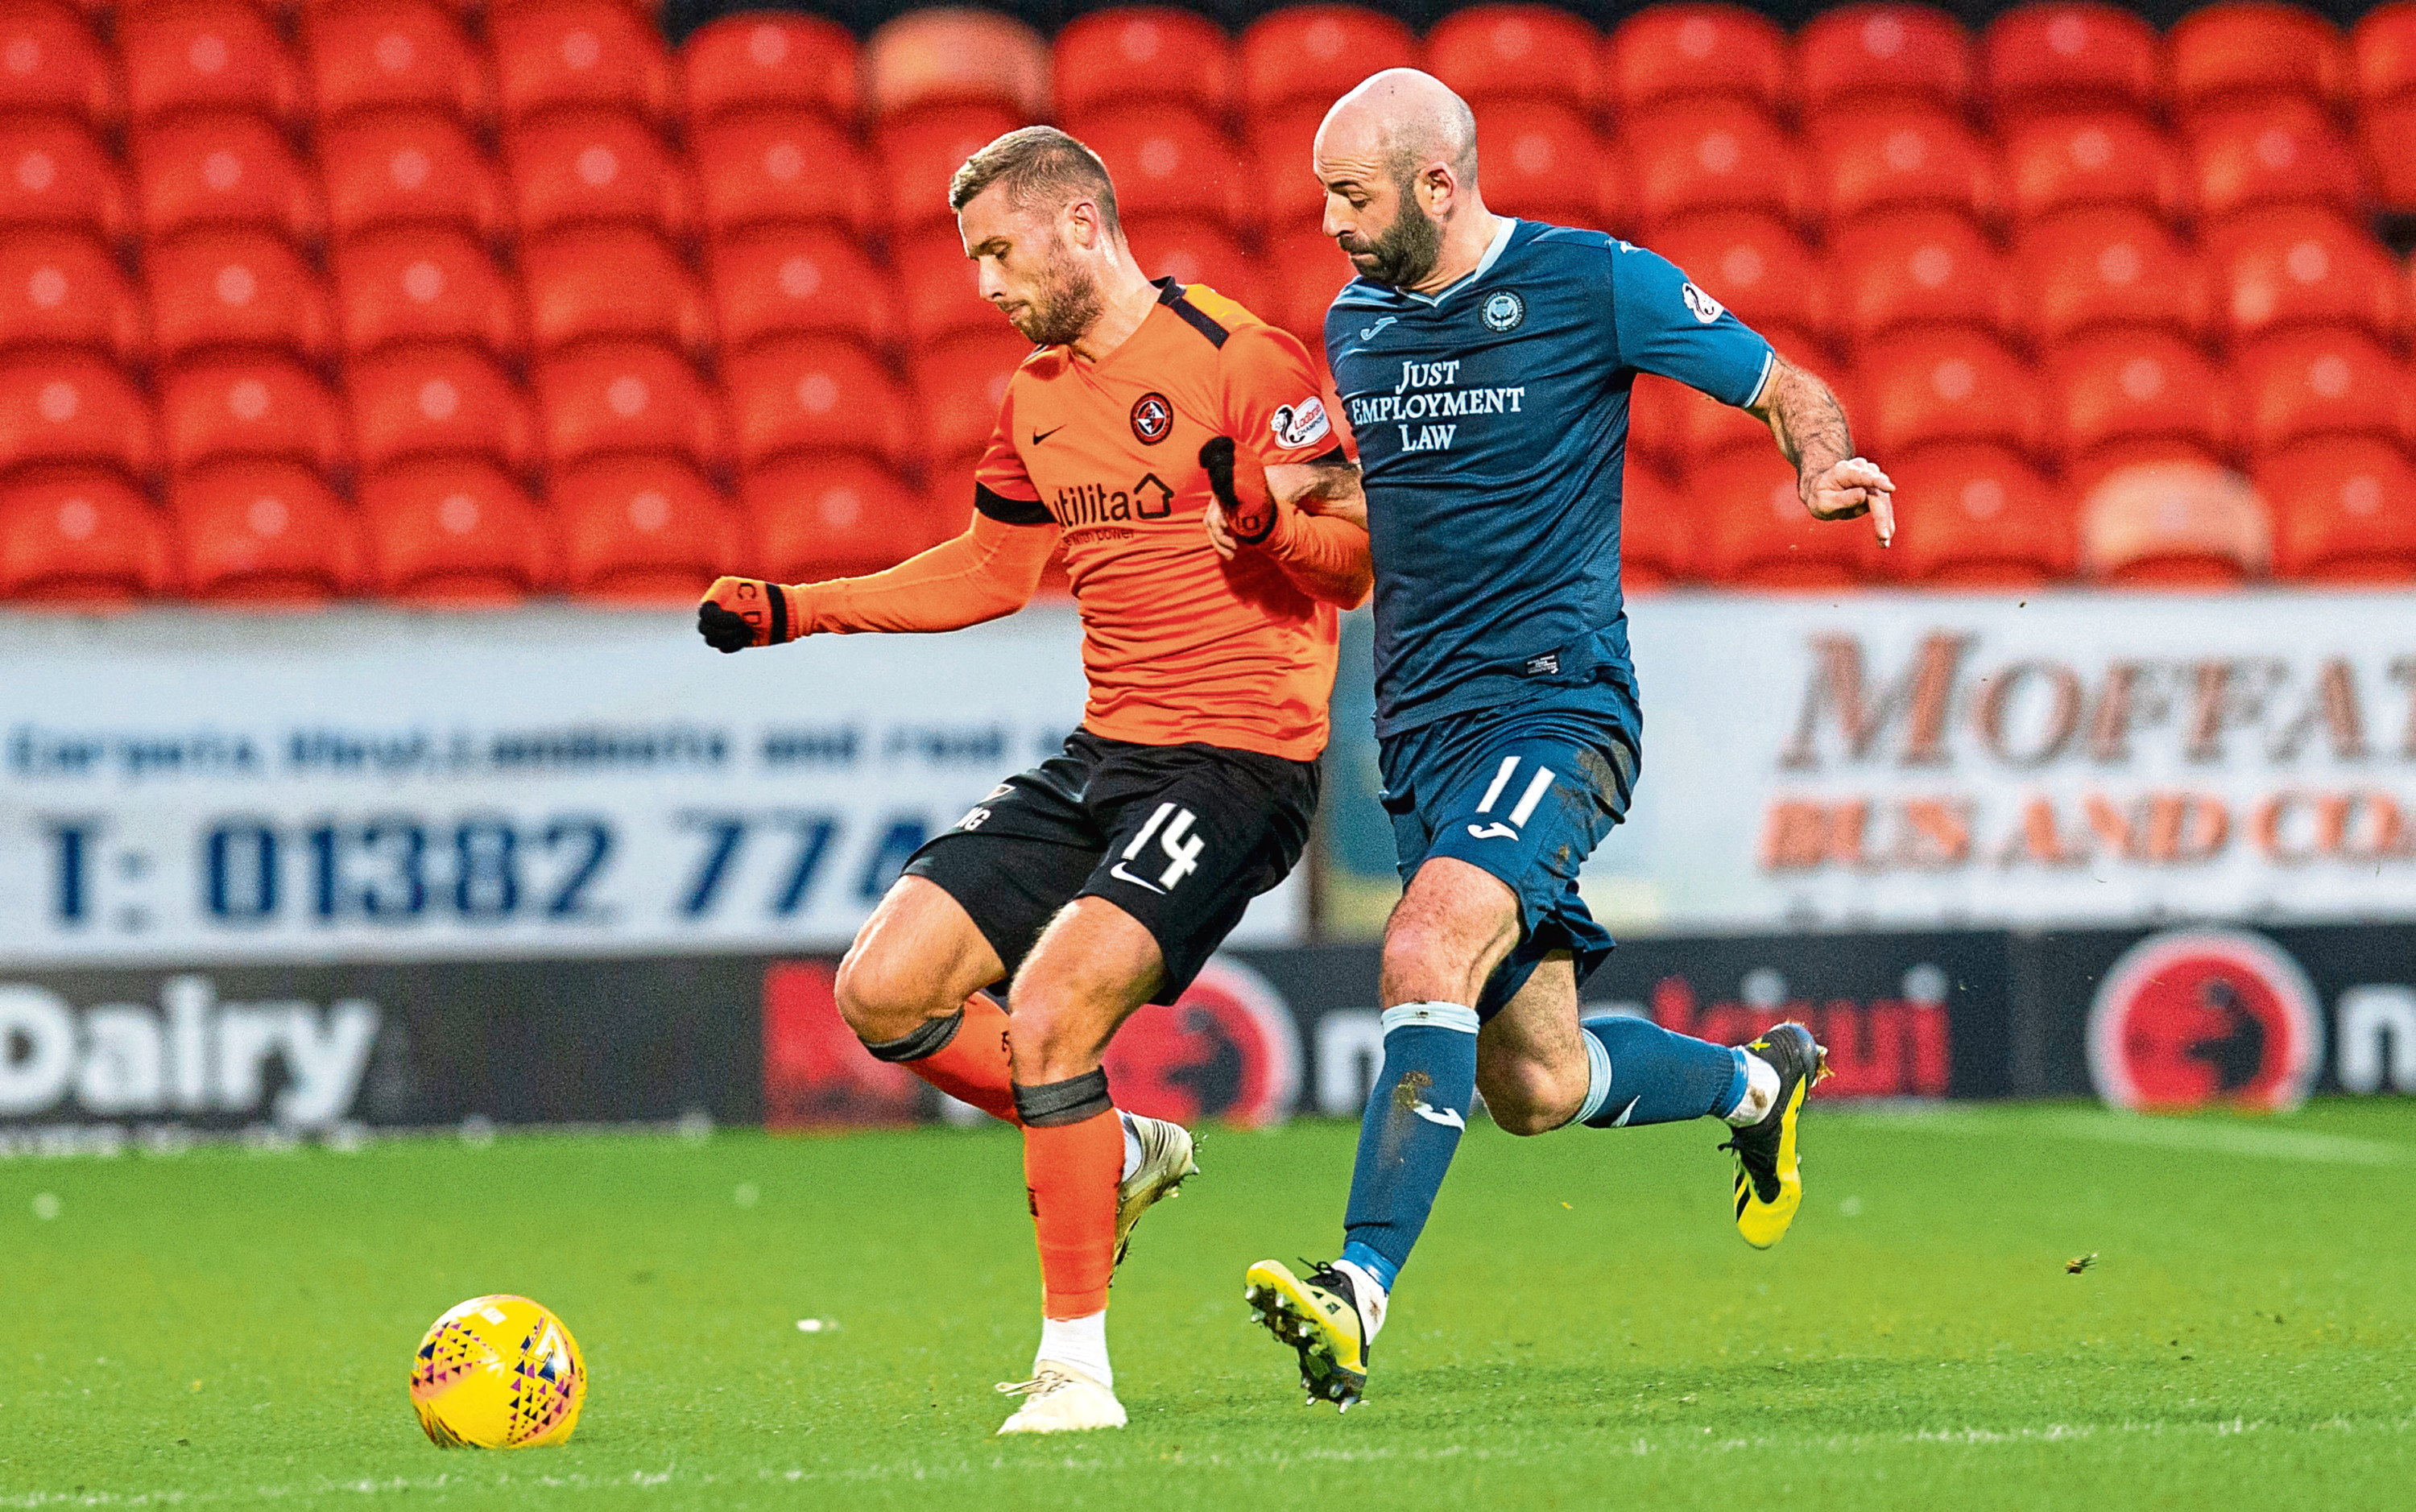 Dundee United's Pavol Safranko battles with Partick Thistle's Gary Harkins